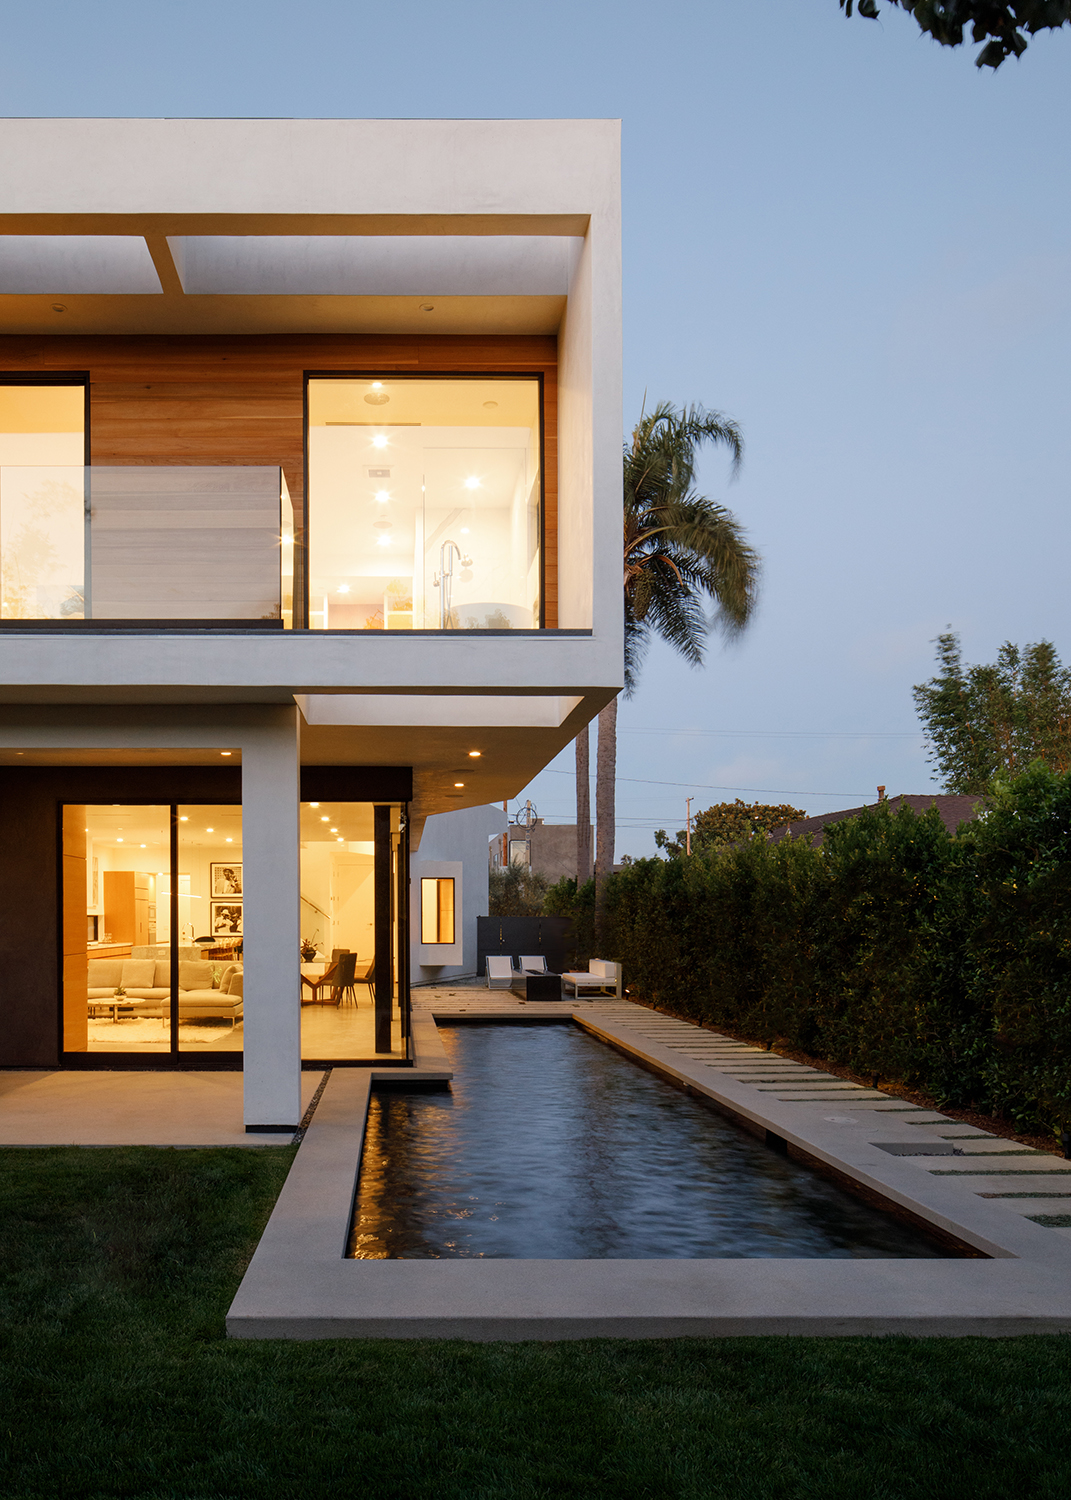 Venice Beach Residence by Griffin Enright Architects